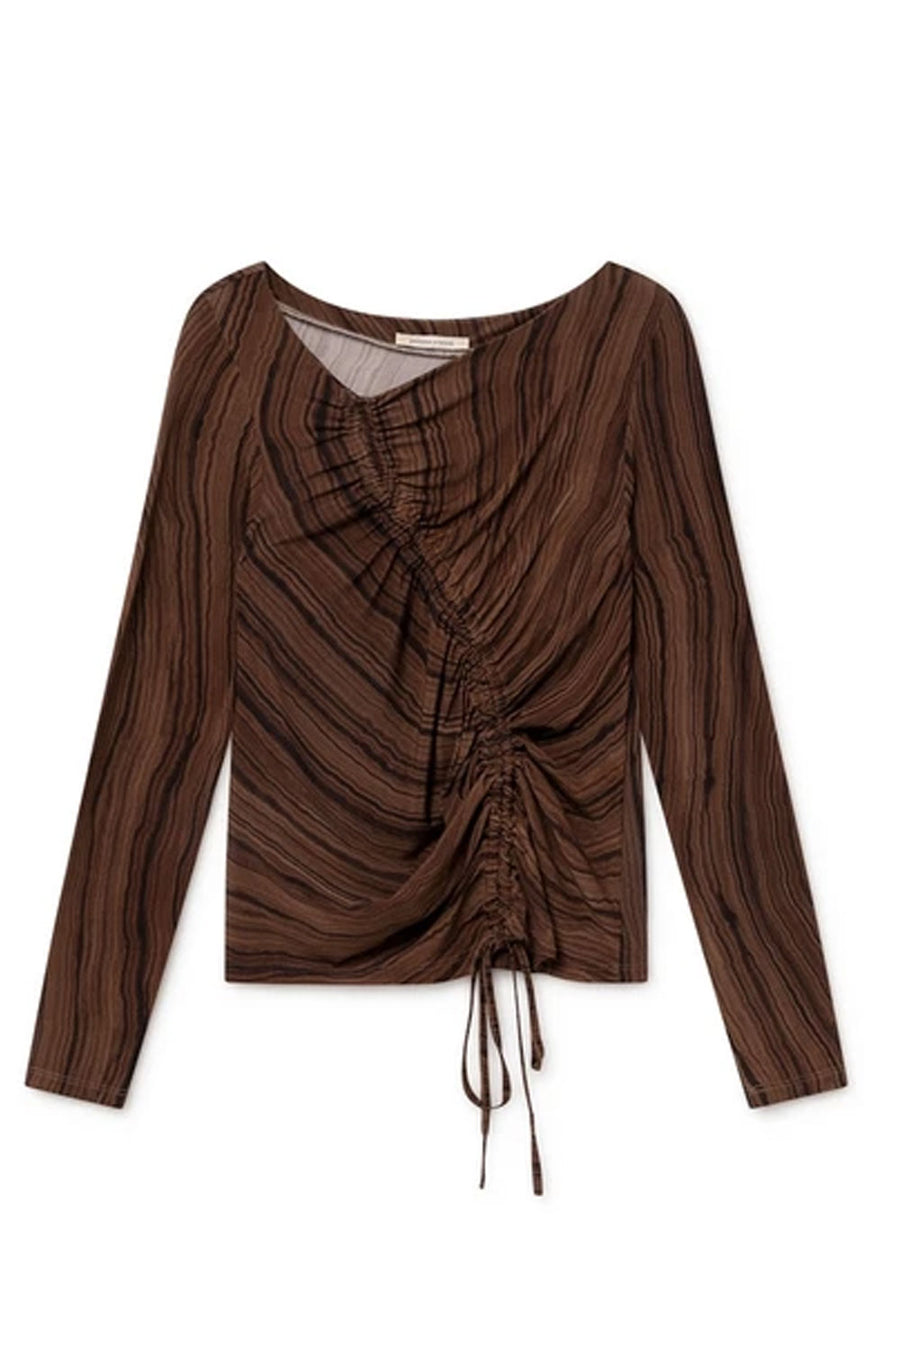 Valley Zaida Top | Brown | Tops NZ | PALOMA WOOL NZ | Black Box Boutique Auckland | Womens Fashion NZ